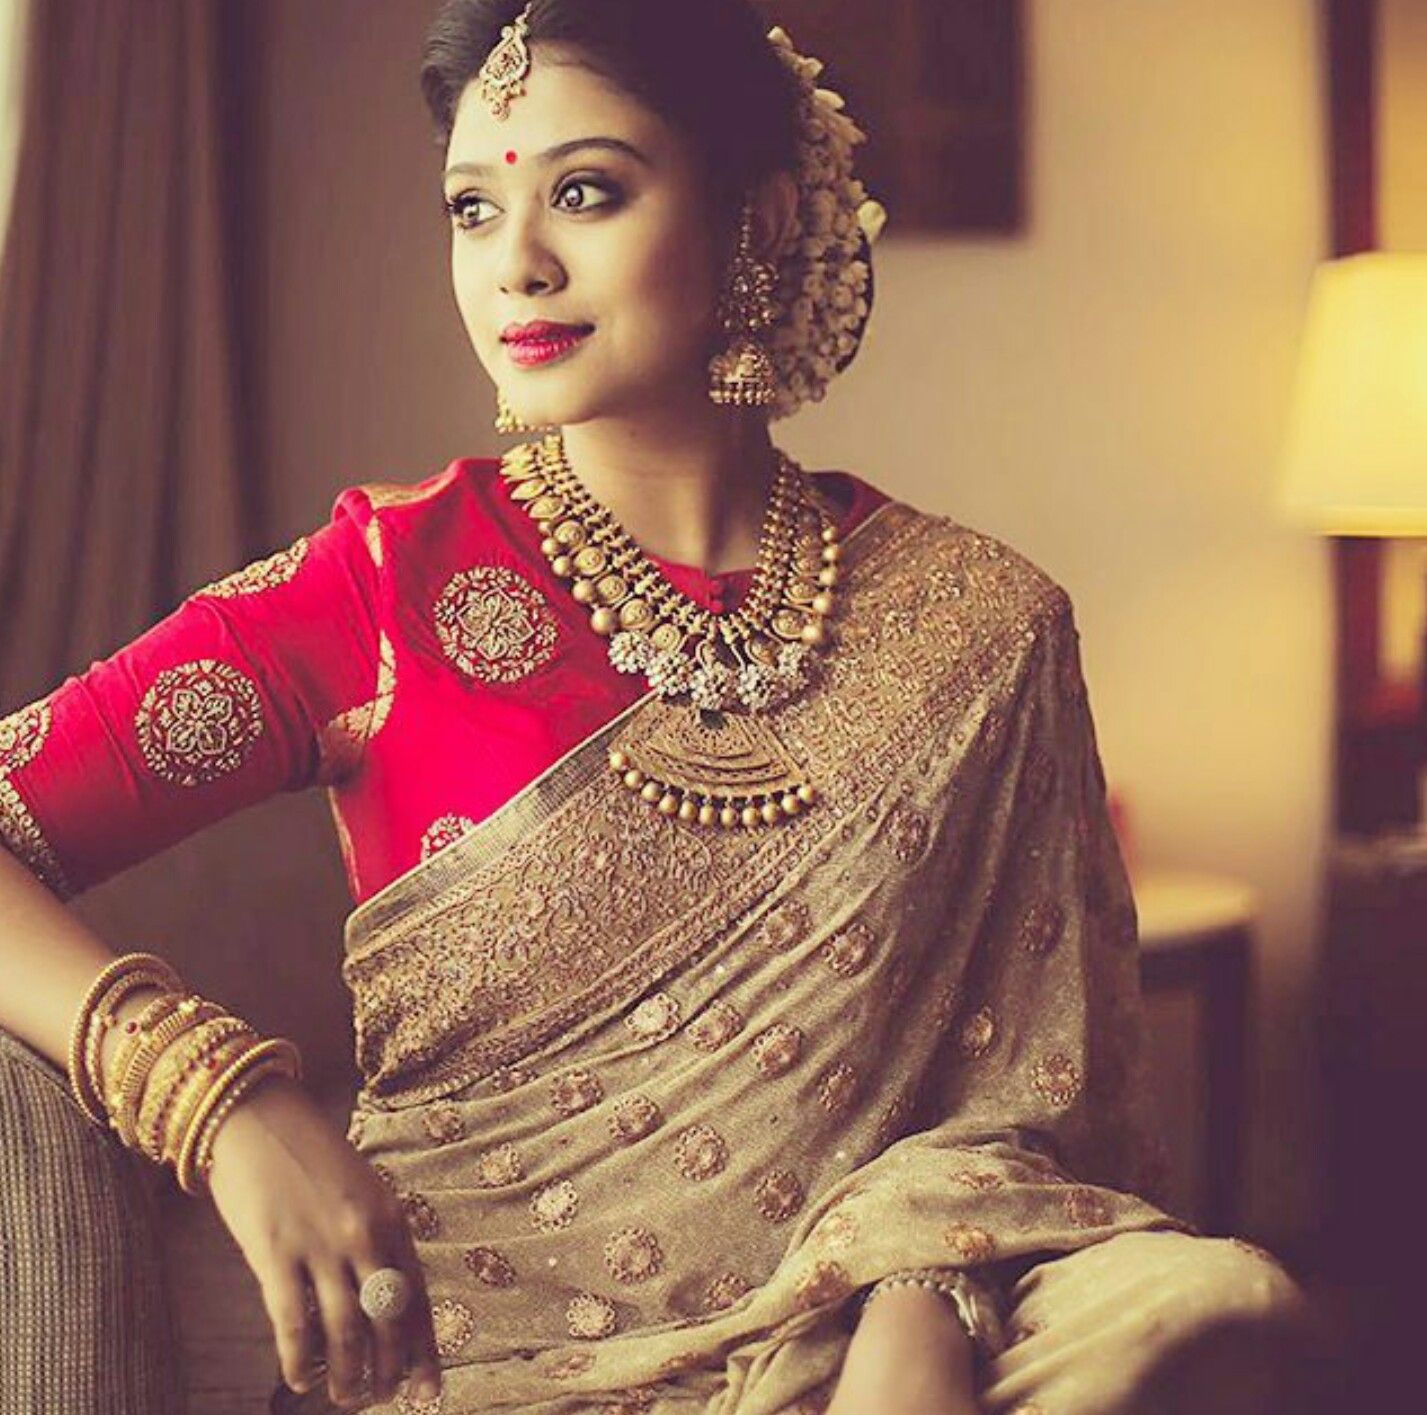 Wedding Hairstyle For Kerala Bride: Gold Jewelry, Silk Sari And Blouse, And Fresh Jasmines In